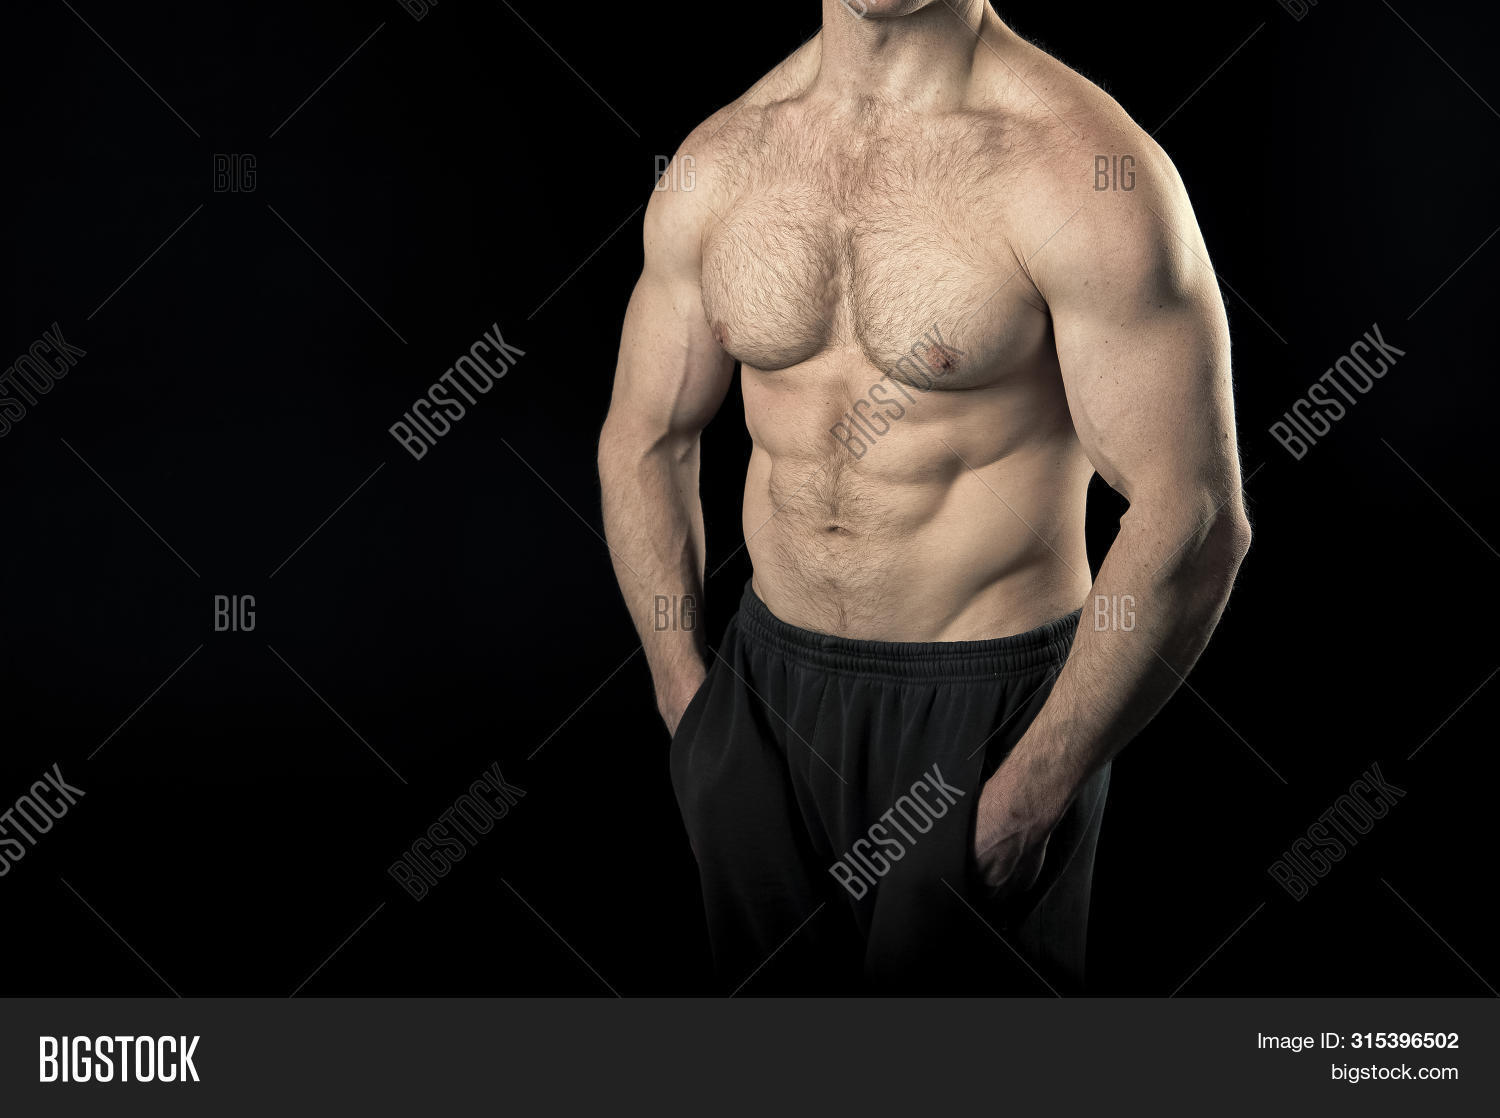 ab,activity,arms,athletic,belly,biceps,body,bodycare,caucasian,chest,concept,diet,dieting,energetic,energy,fit,fitness,gym,health,healthcare,healthy,male,muscle,muscular,power,skin,skincare,sport,strong,torso,training,triceps,wellness,workout